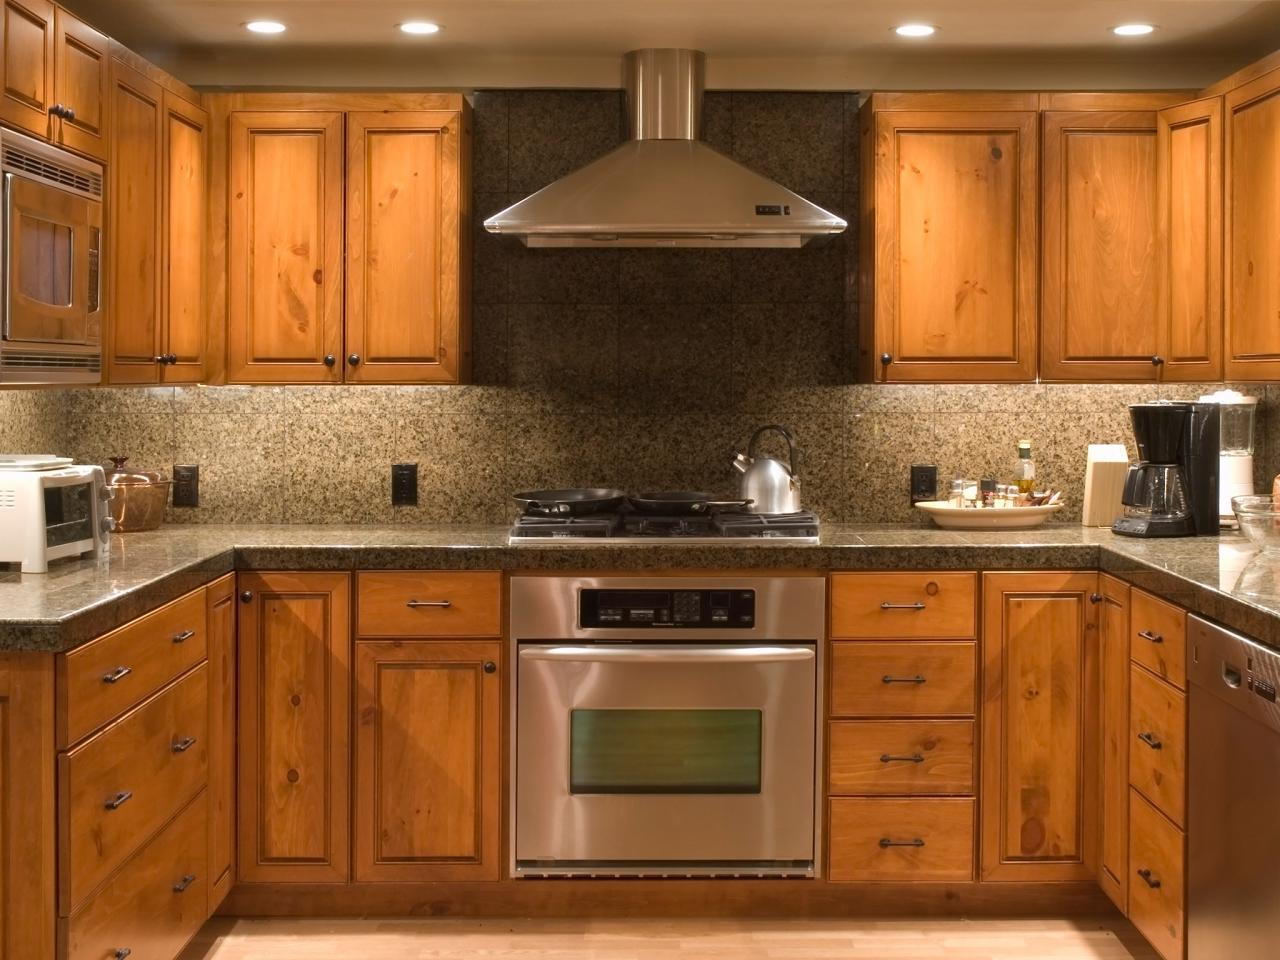 Thomasville Cabinets | Thomasville Cabinets Cost | Are Kraftmaid Cabinets Good Quality